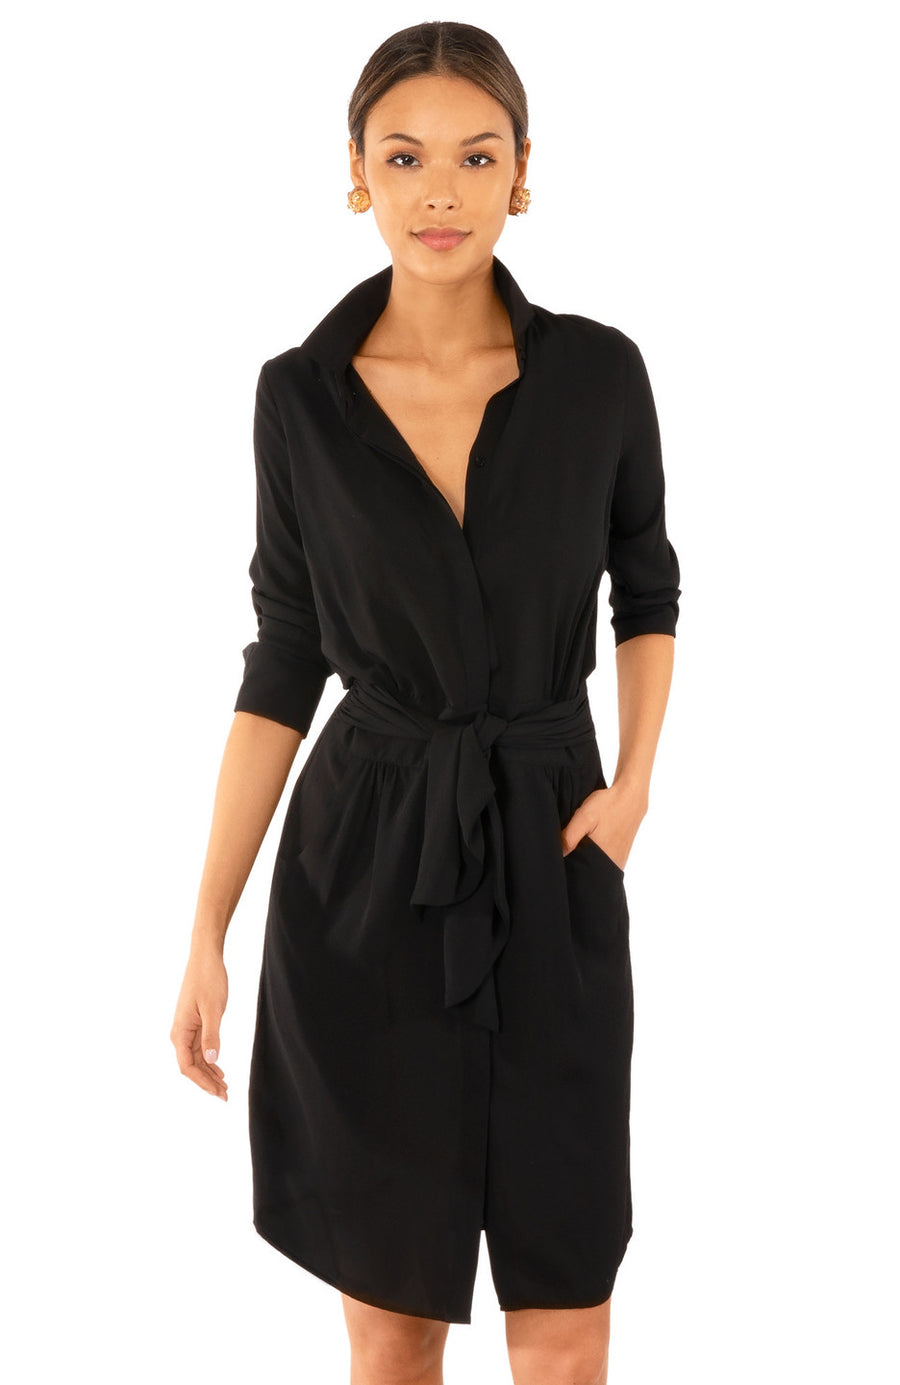 Gretchen Scott Breezy Blouson Chiffon Dress -Black